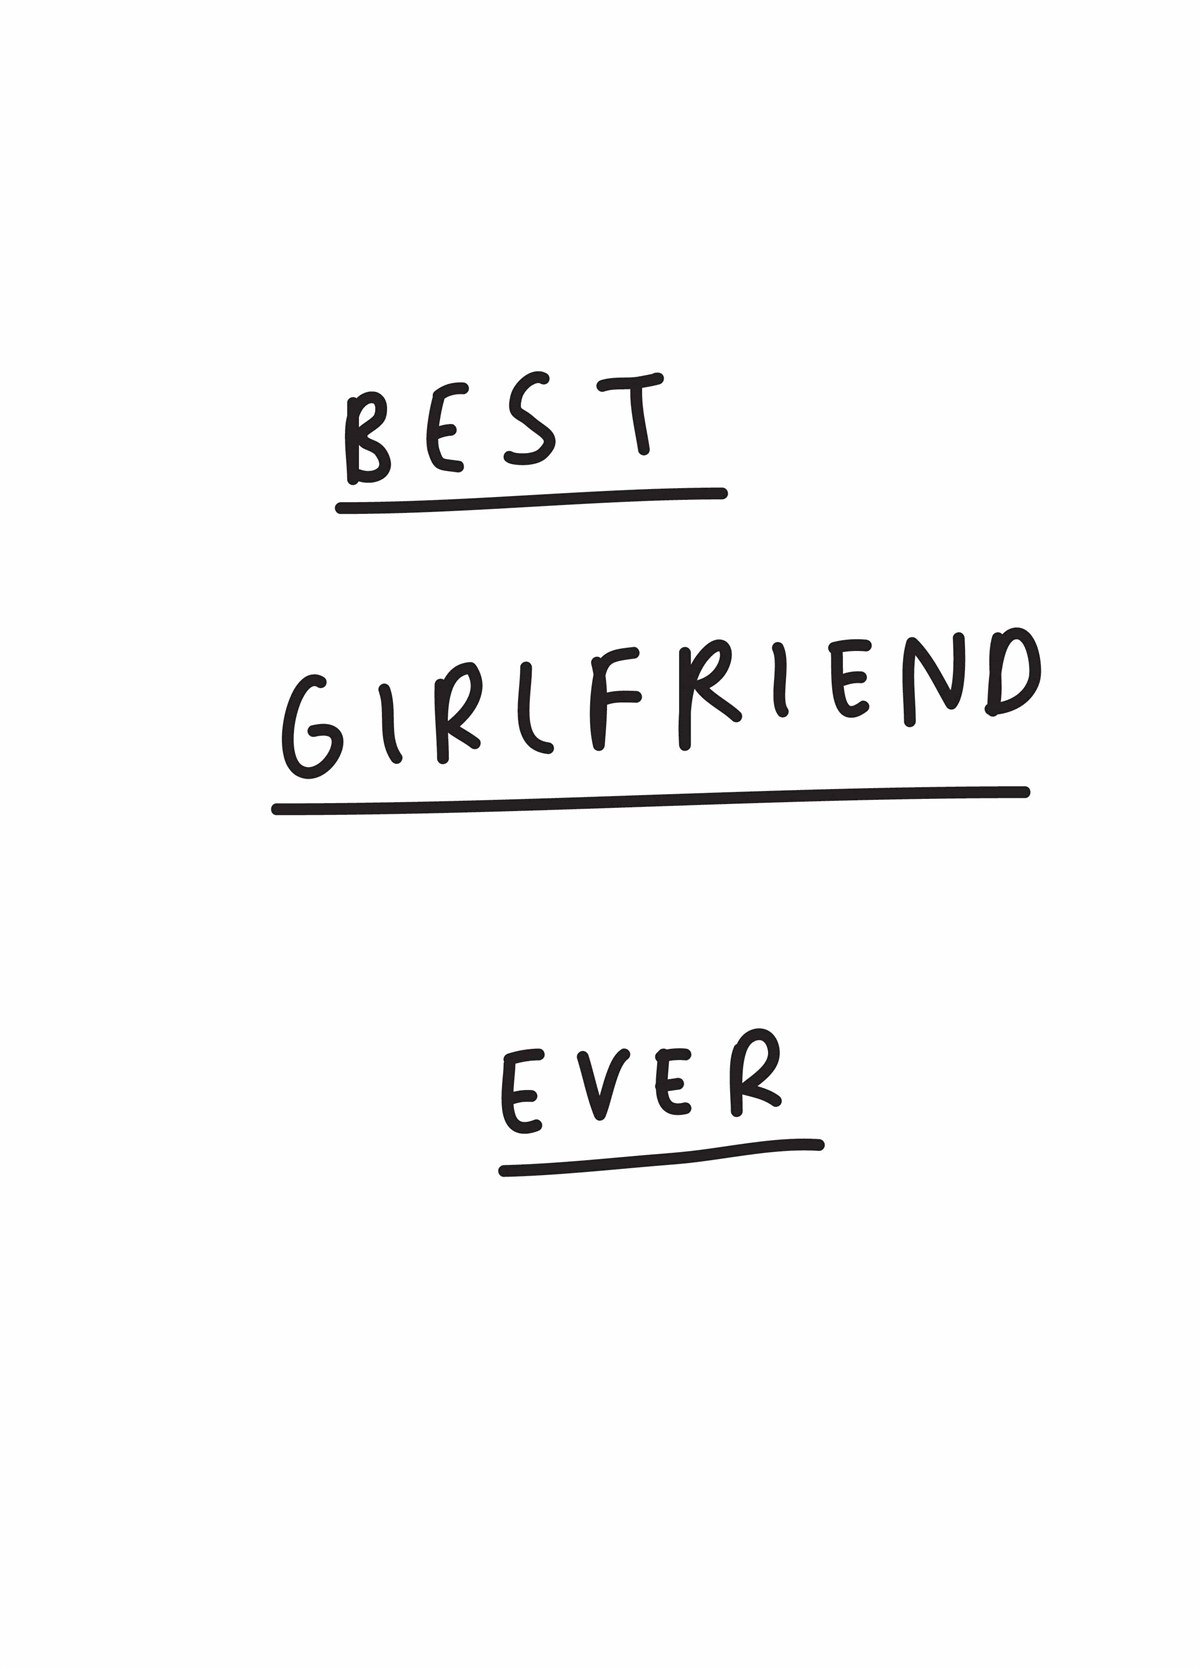 Best ever the your girlfriend 100 Best